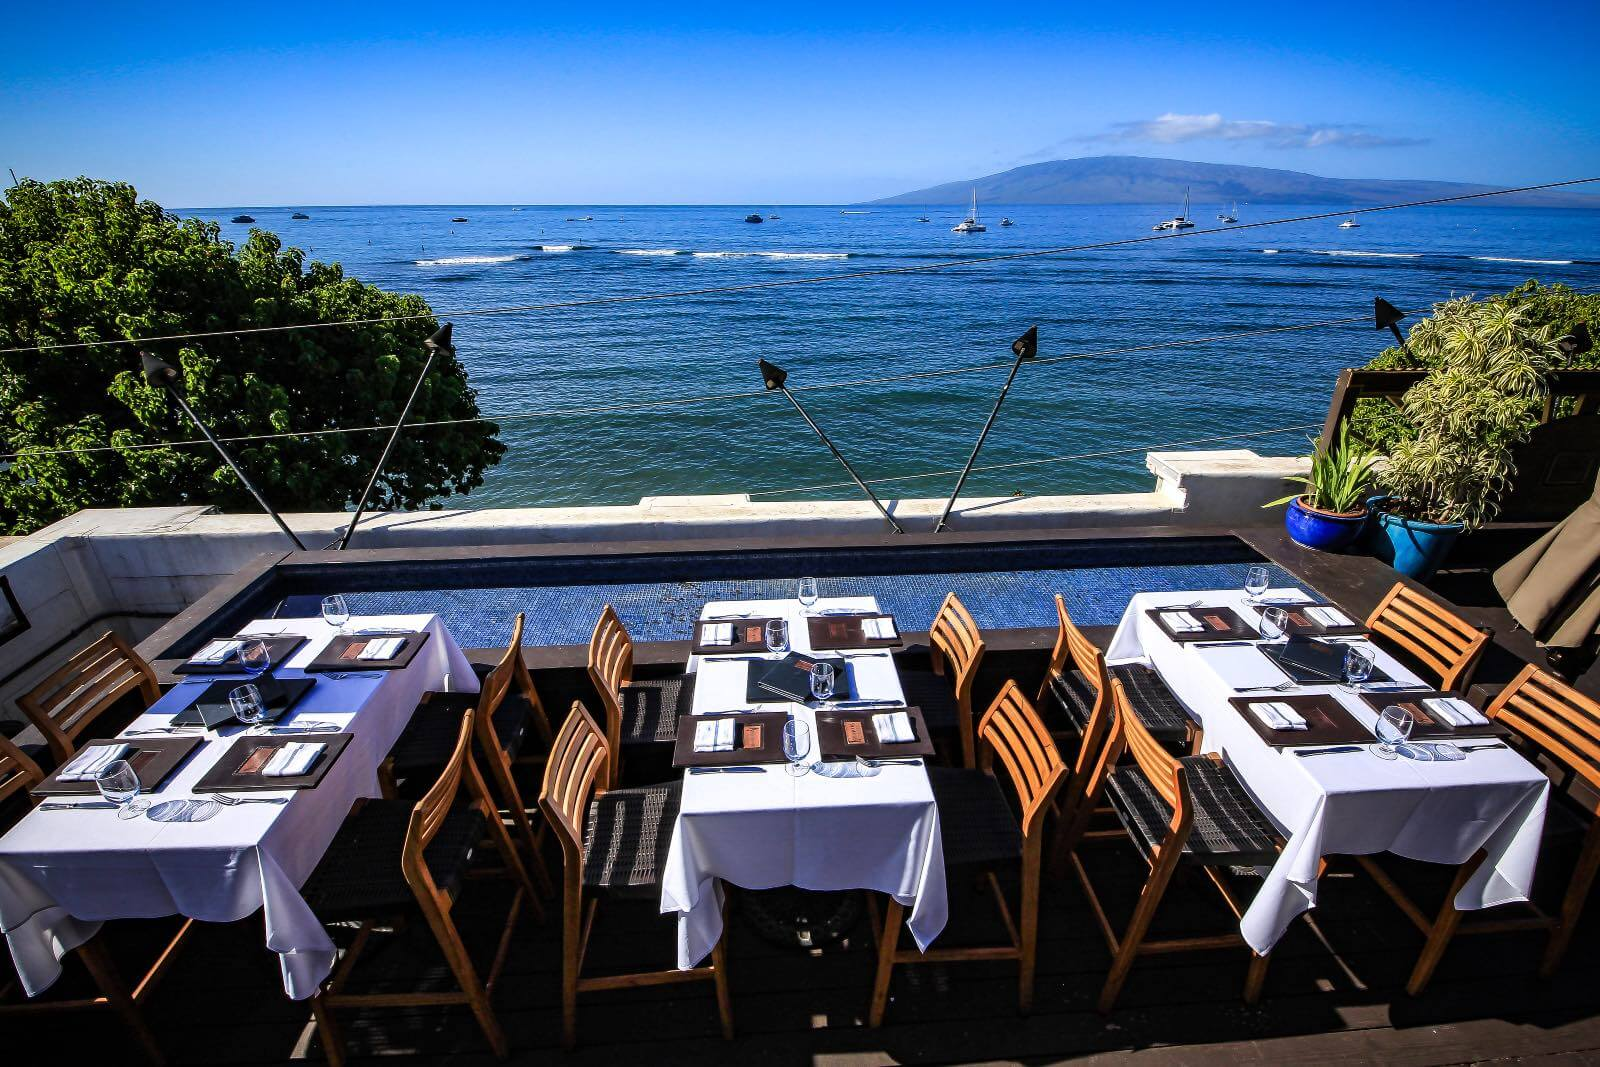 The best view while eating lunch in Lahaina Maui